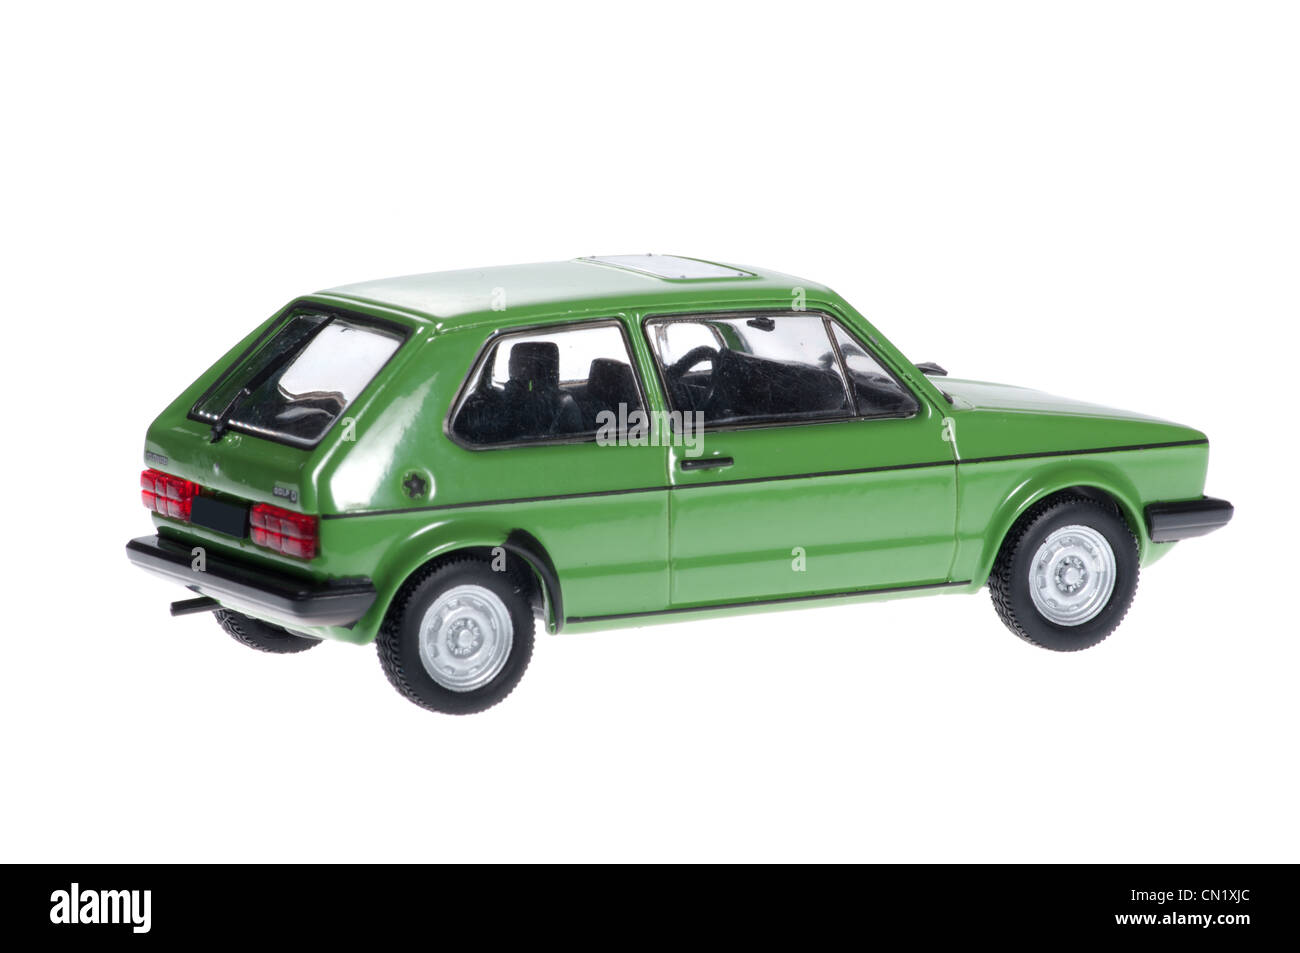 the model of old green volkswagen golf stock photo, royalty free